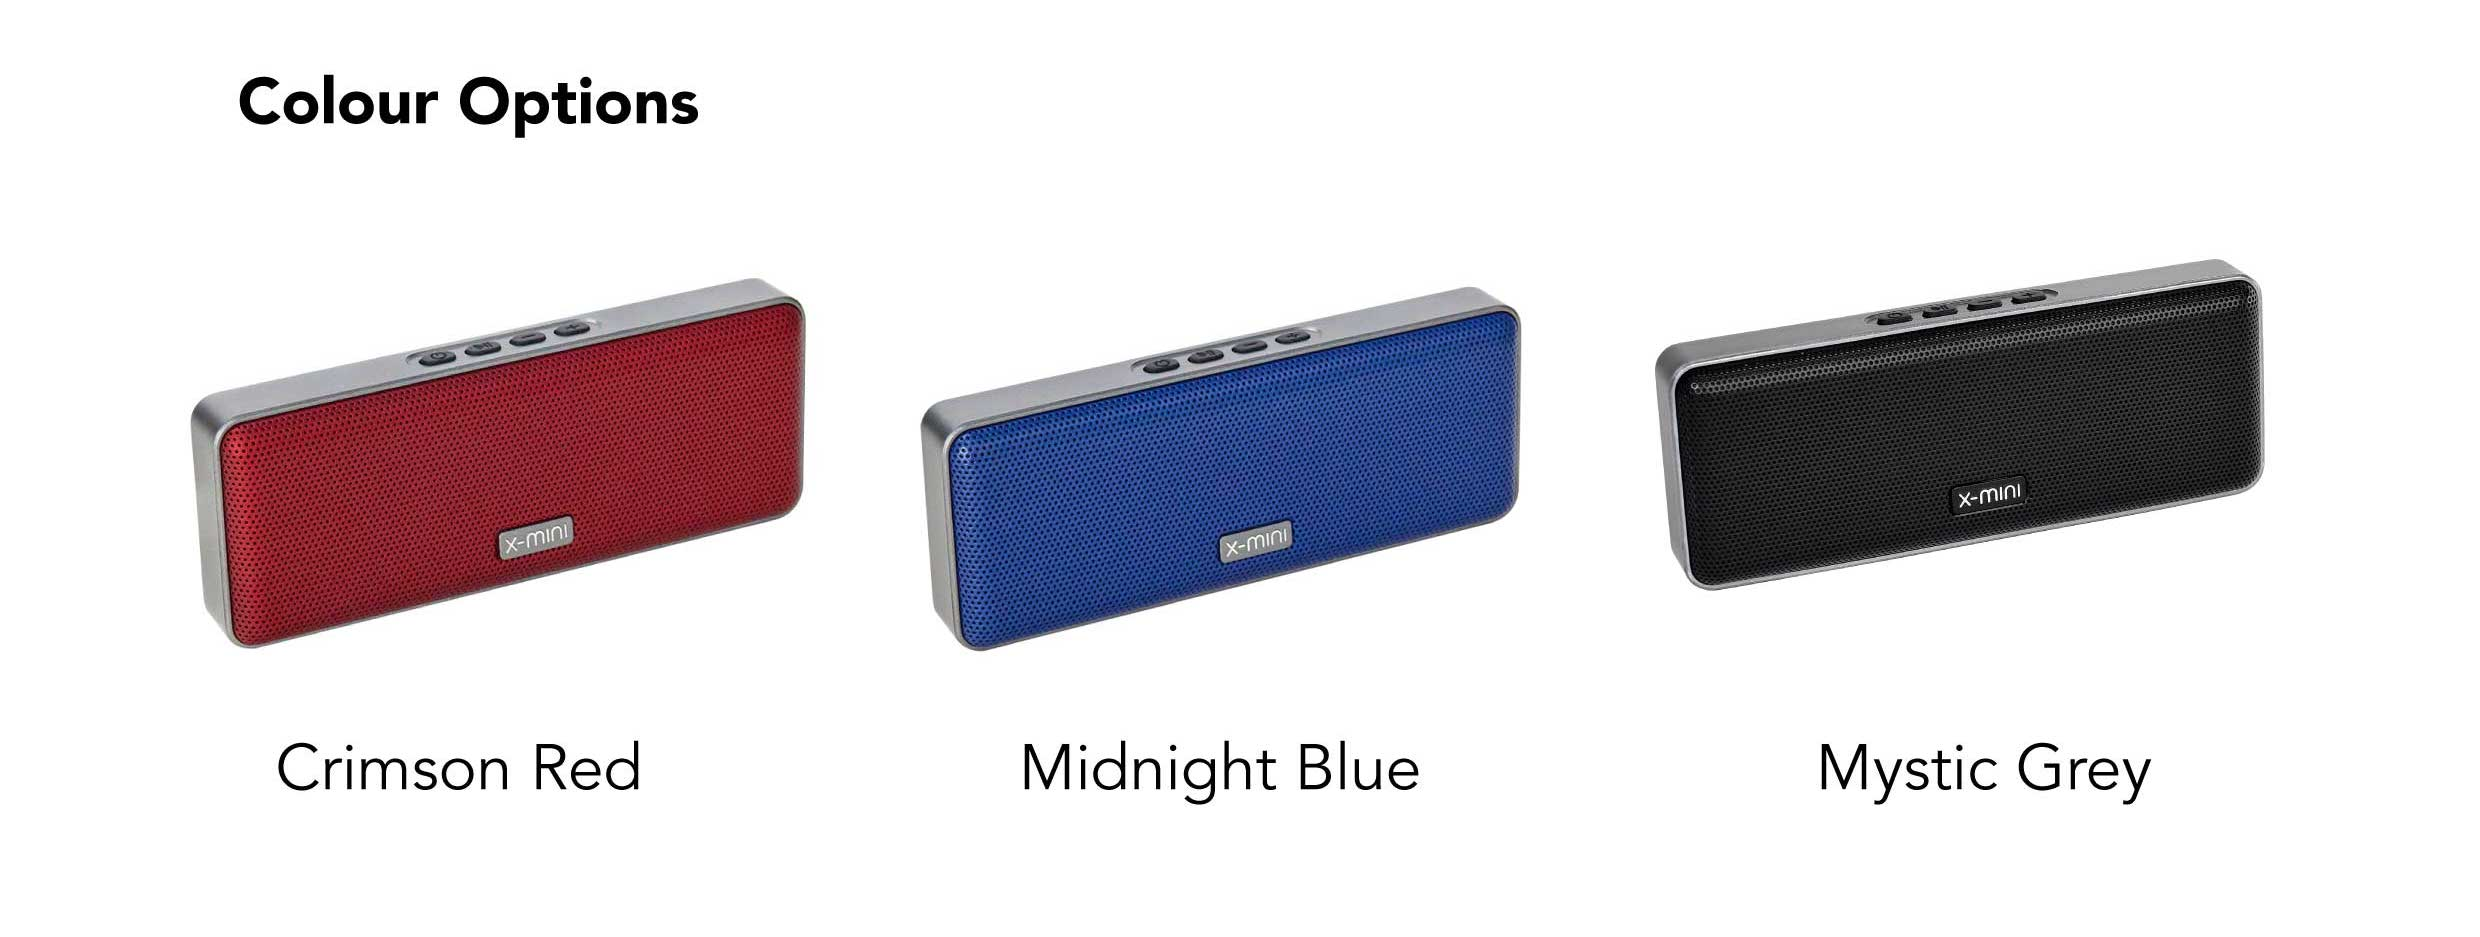 X-mini-Xoundbar-True-Wireless-Portable-Bluetooth-Stereo-Speaker-Colour-Options